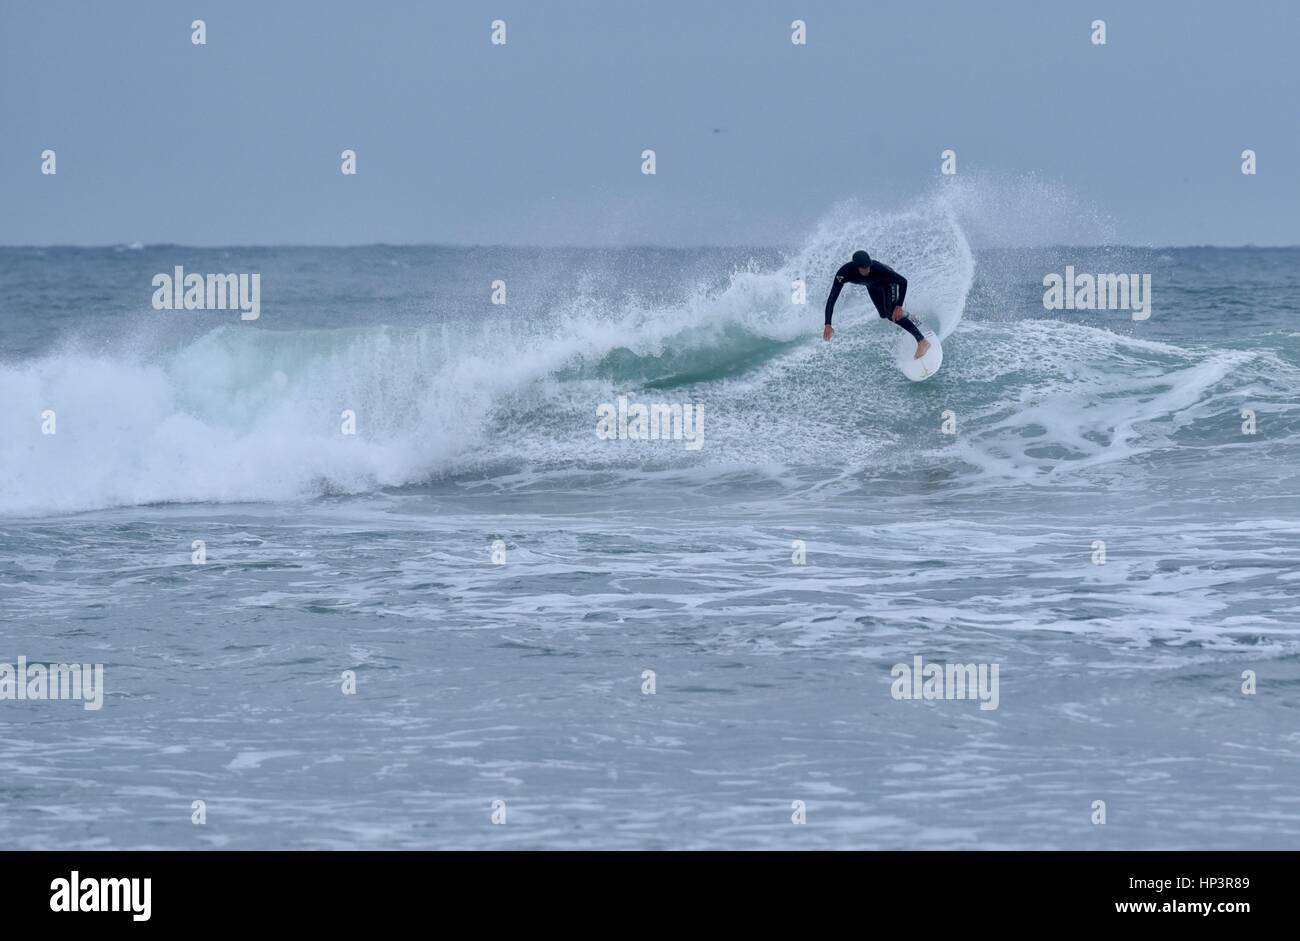 Surfer on wave despite severe weather, high surf and waves crash upon shore of Mission Beach, San Diego,  California. Stock Photo